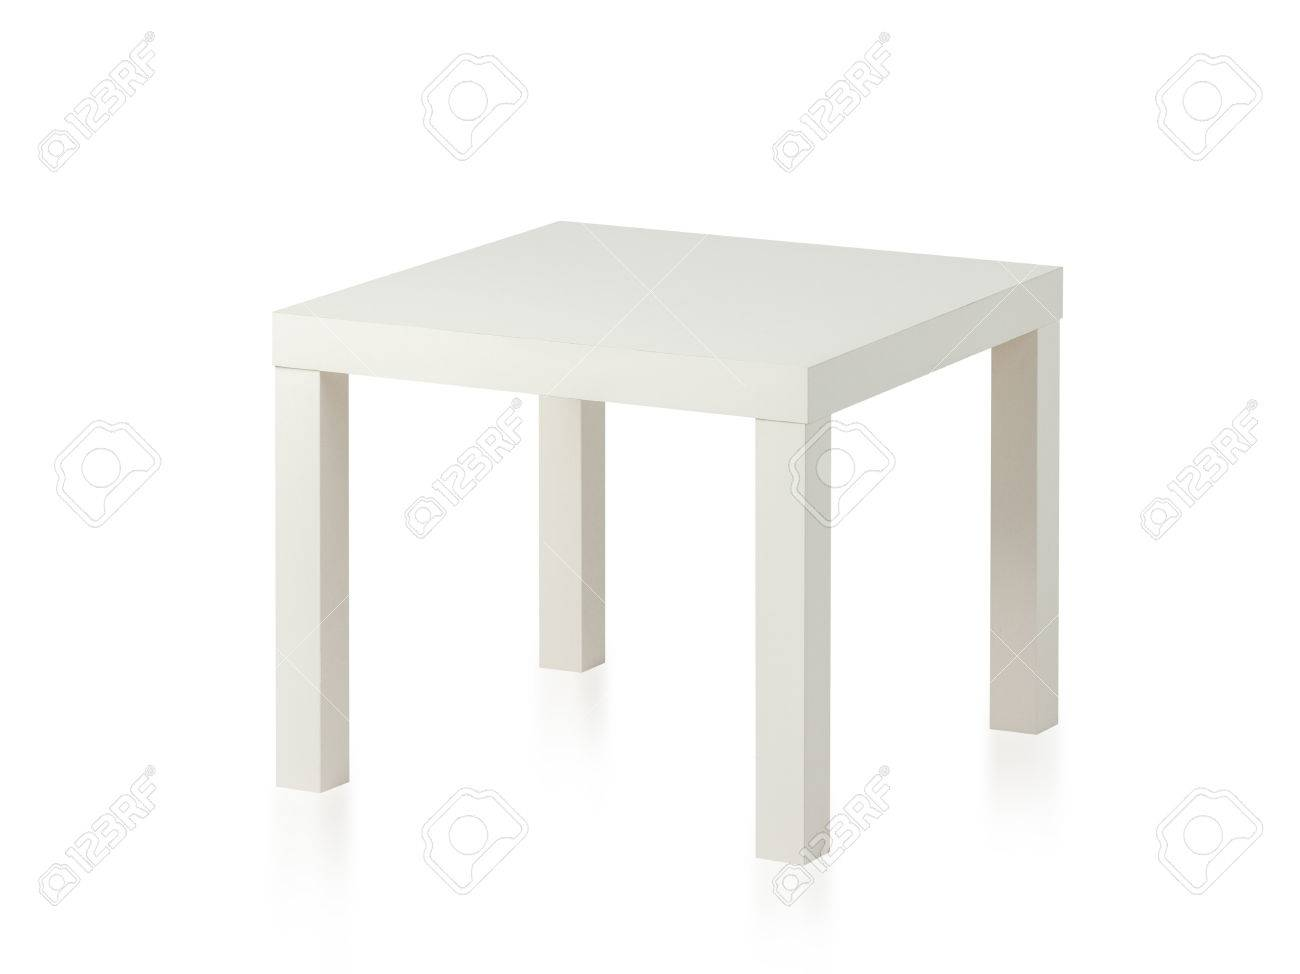 White Plastic Table Isolated White Background Stock